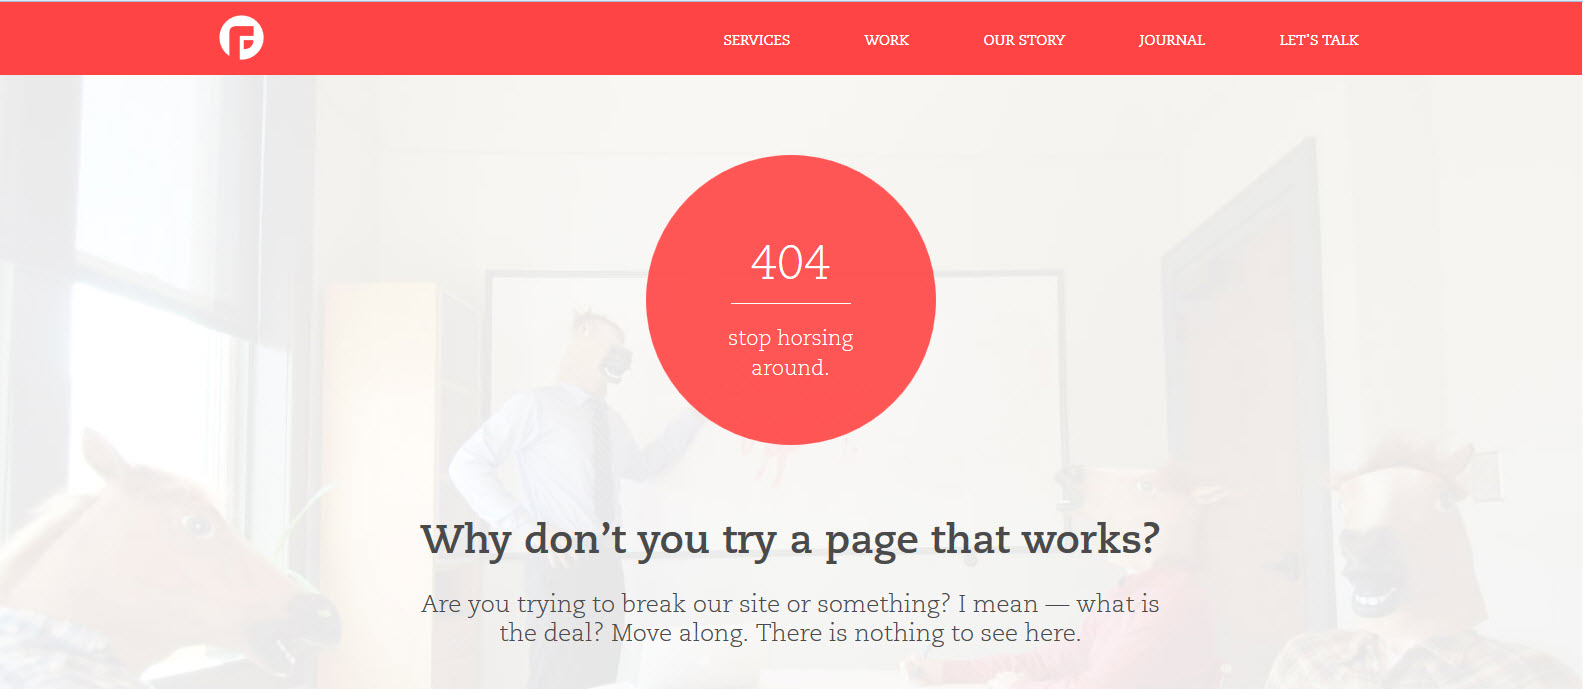 Focus Lab 404 page